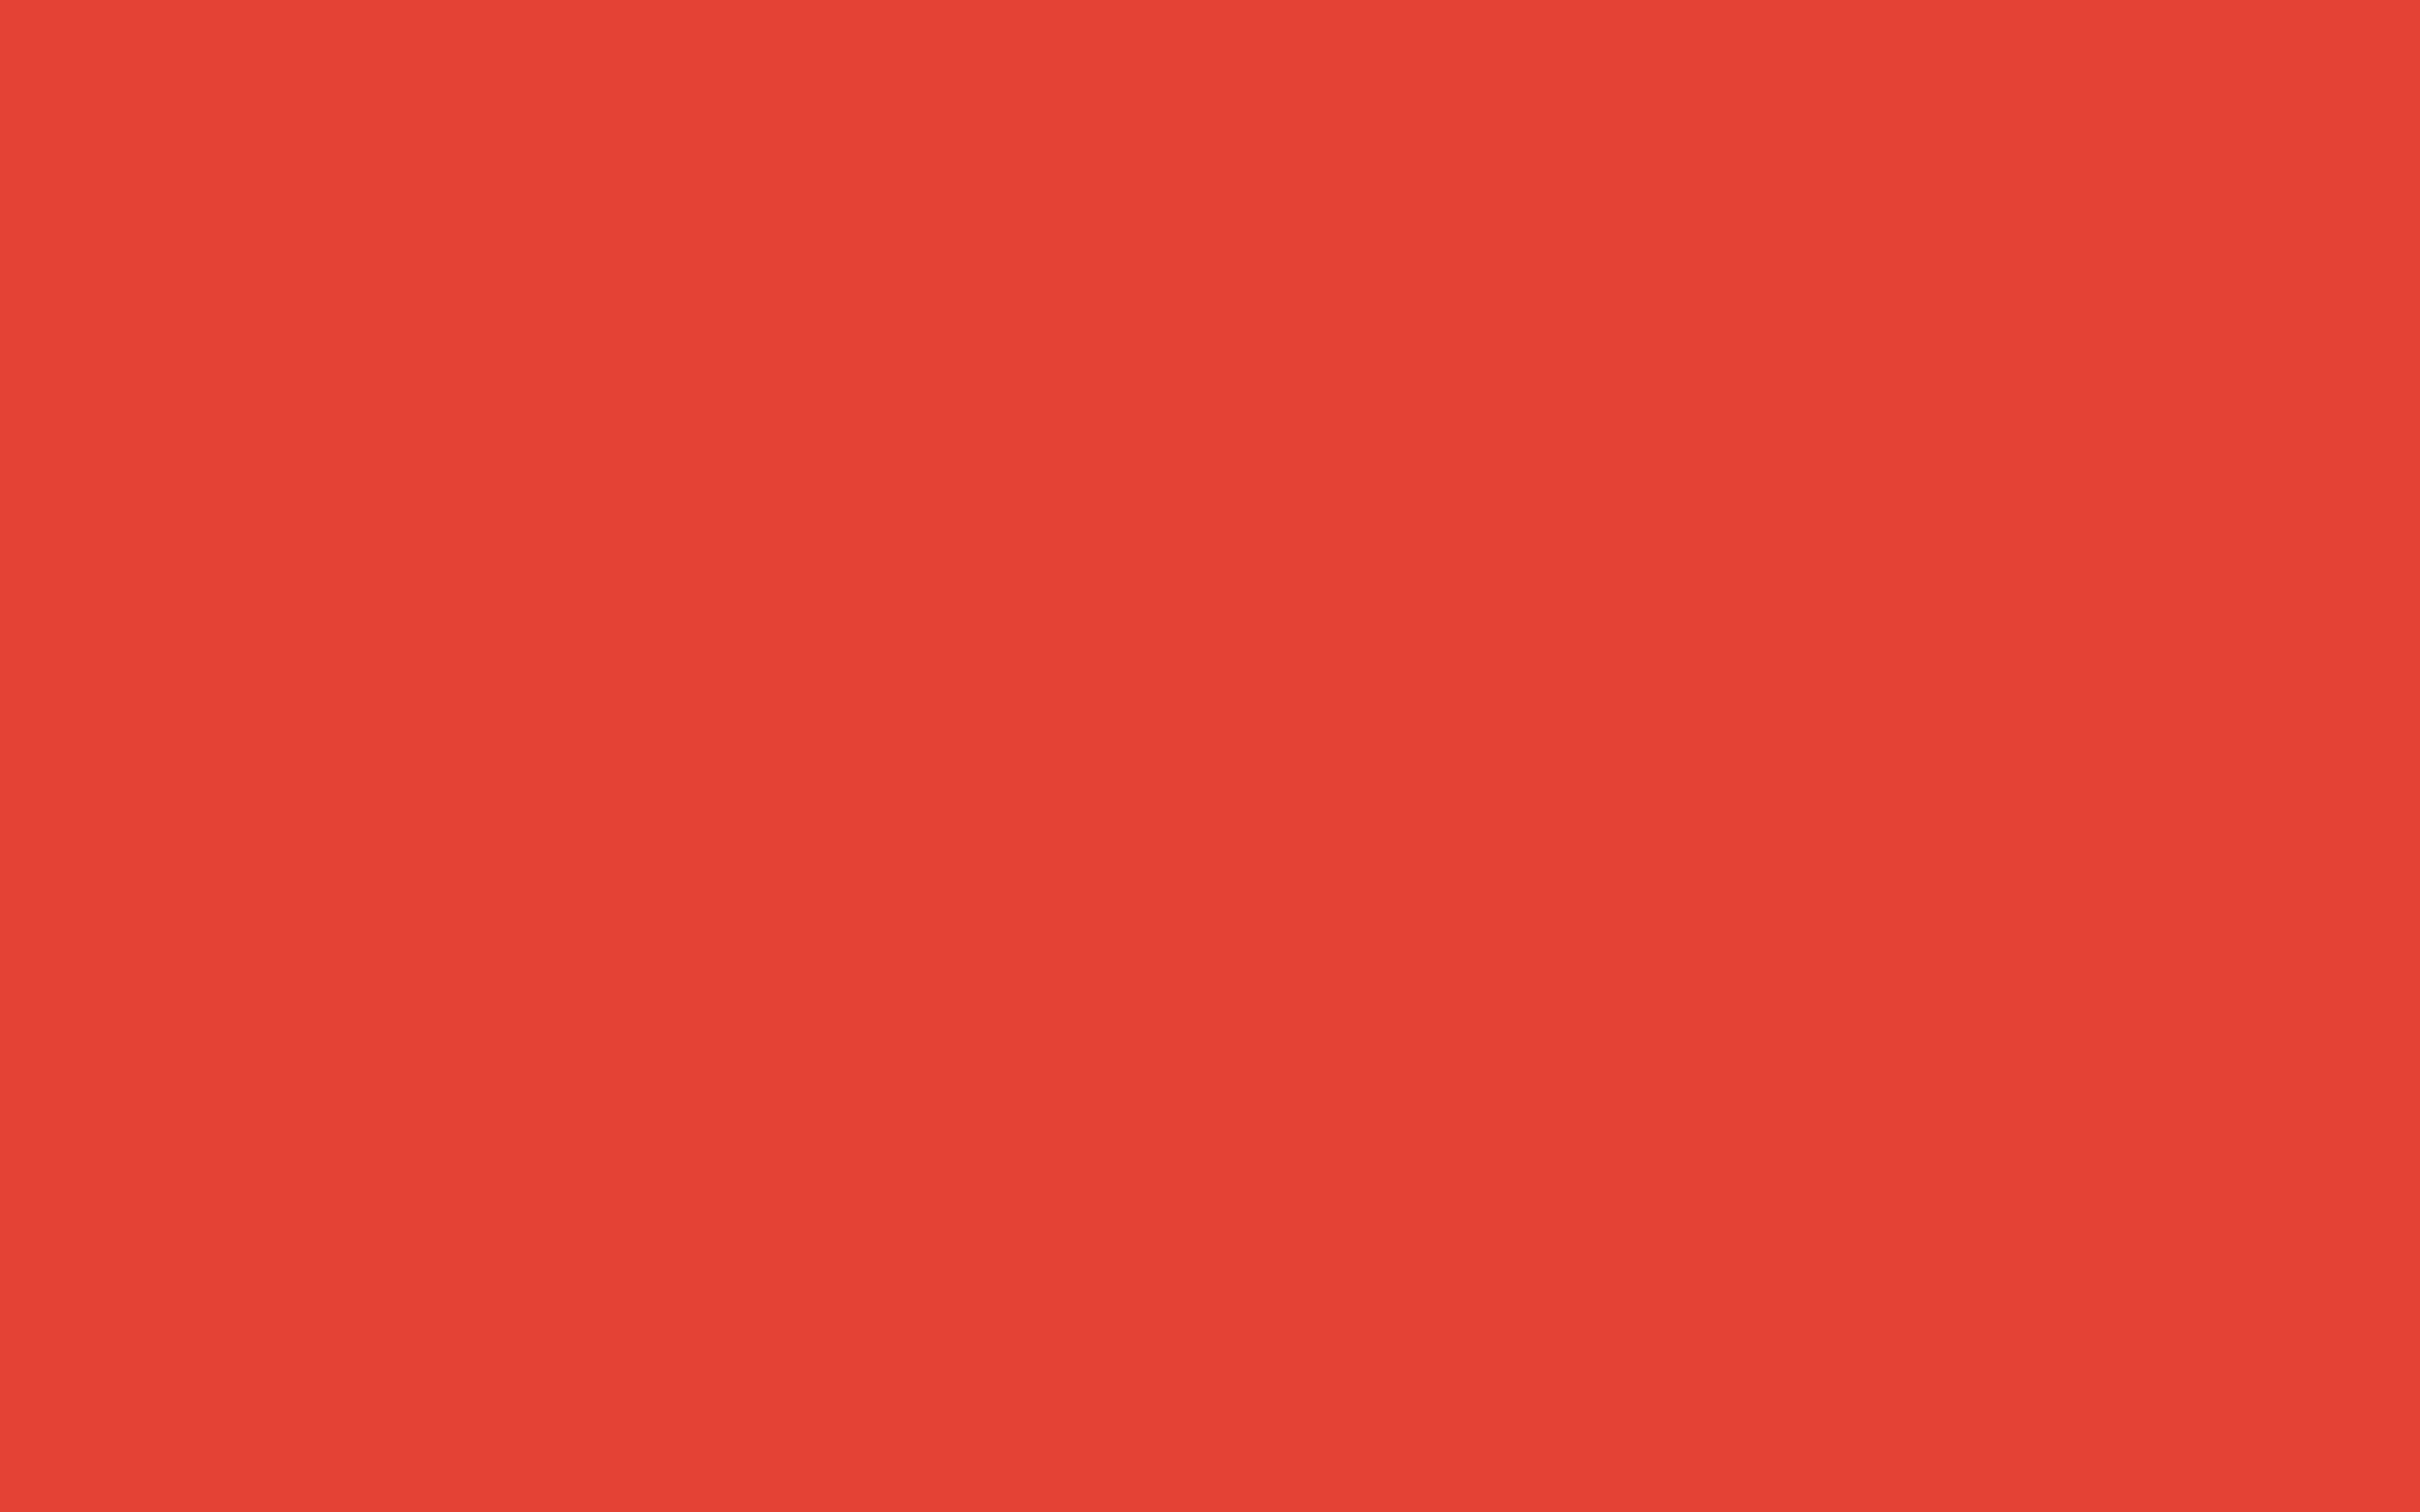 2880x1800 Cinnabar Solid Color Background